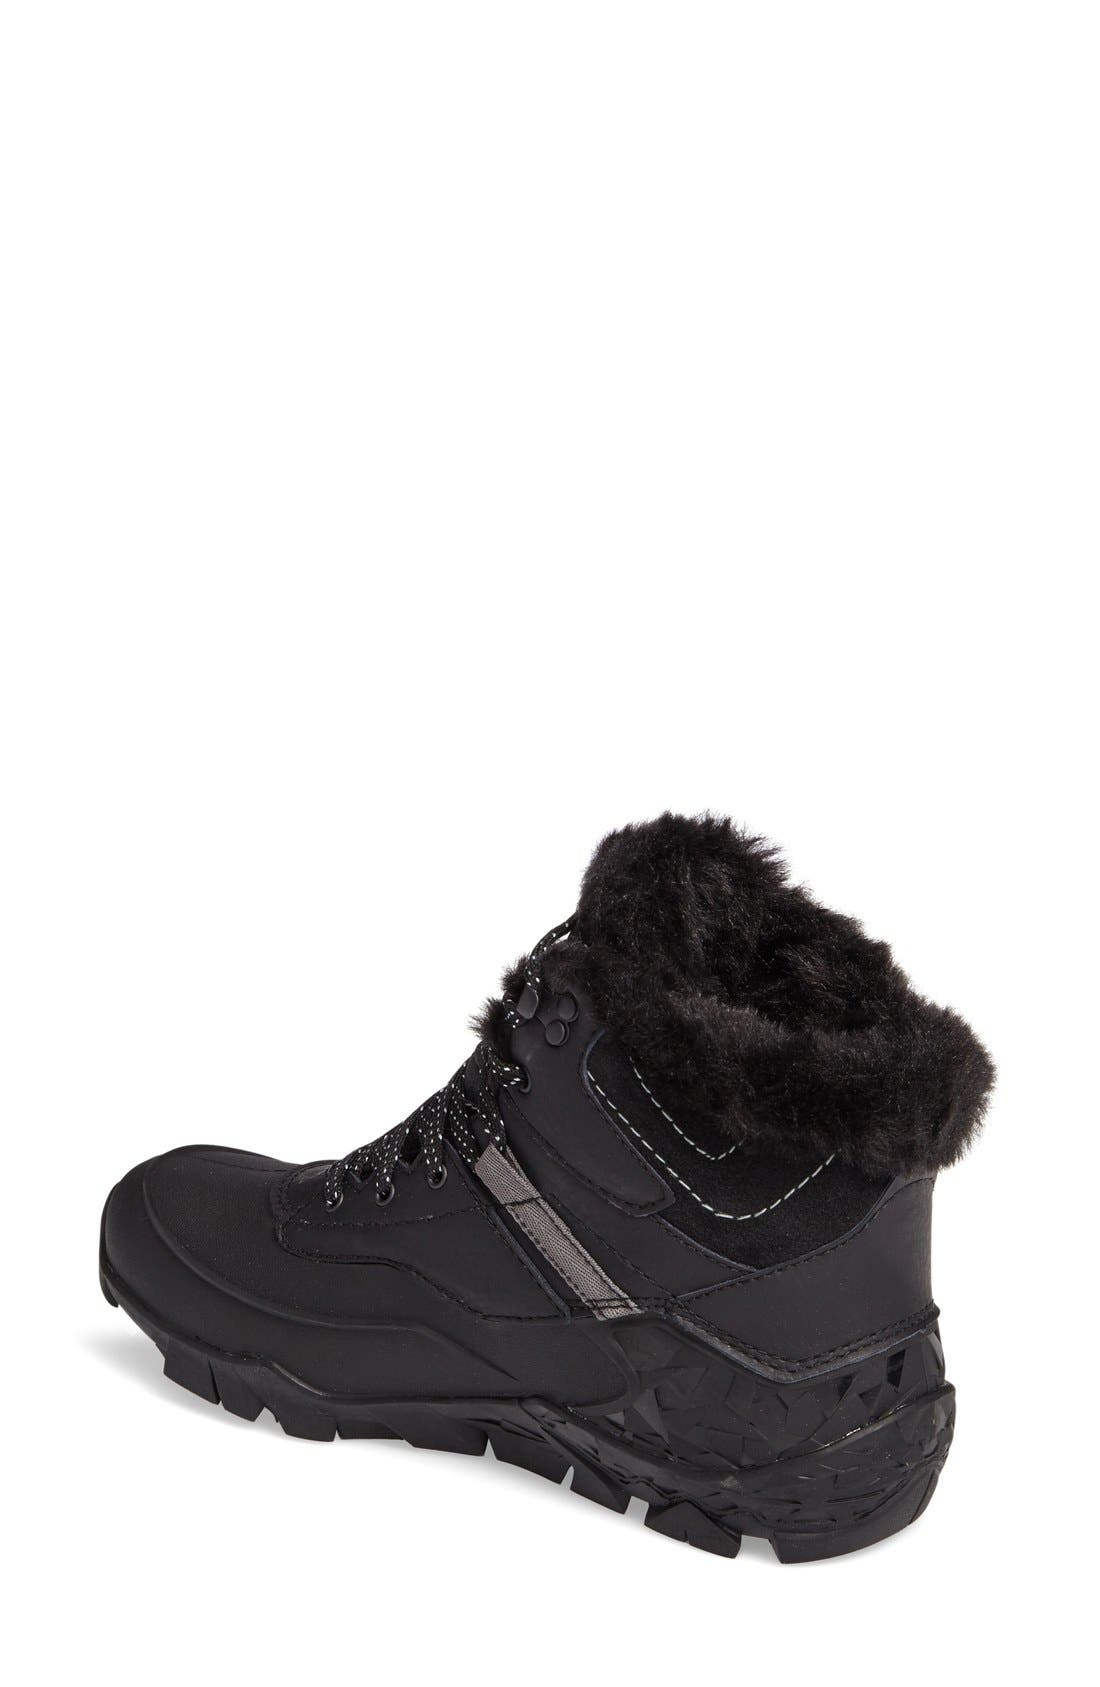 Aurora 6 Waterproof Faux Fur Lined Boot,                             Alternate thumbnail 2, color,                             Black Leather